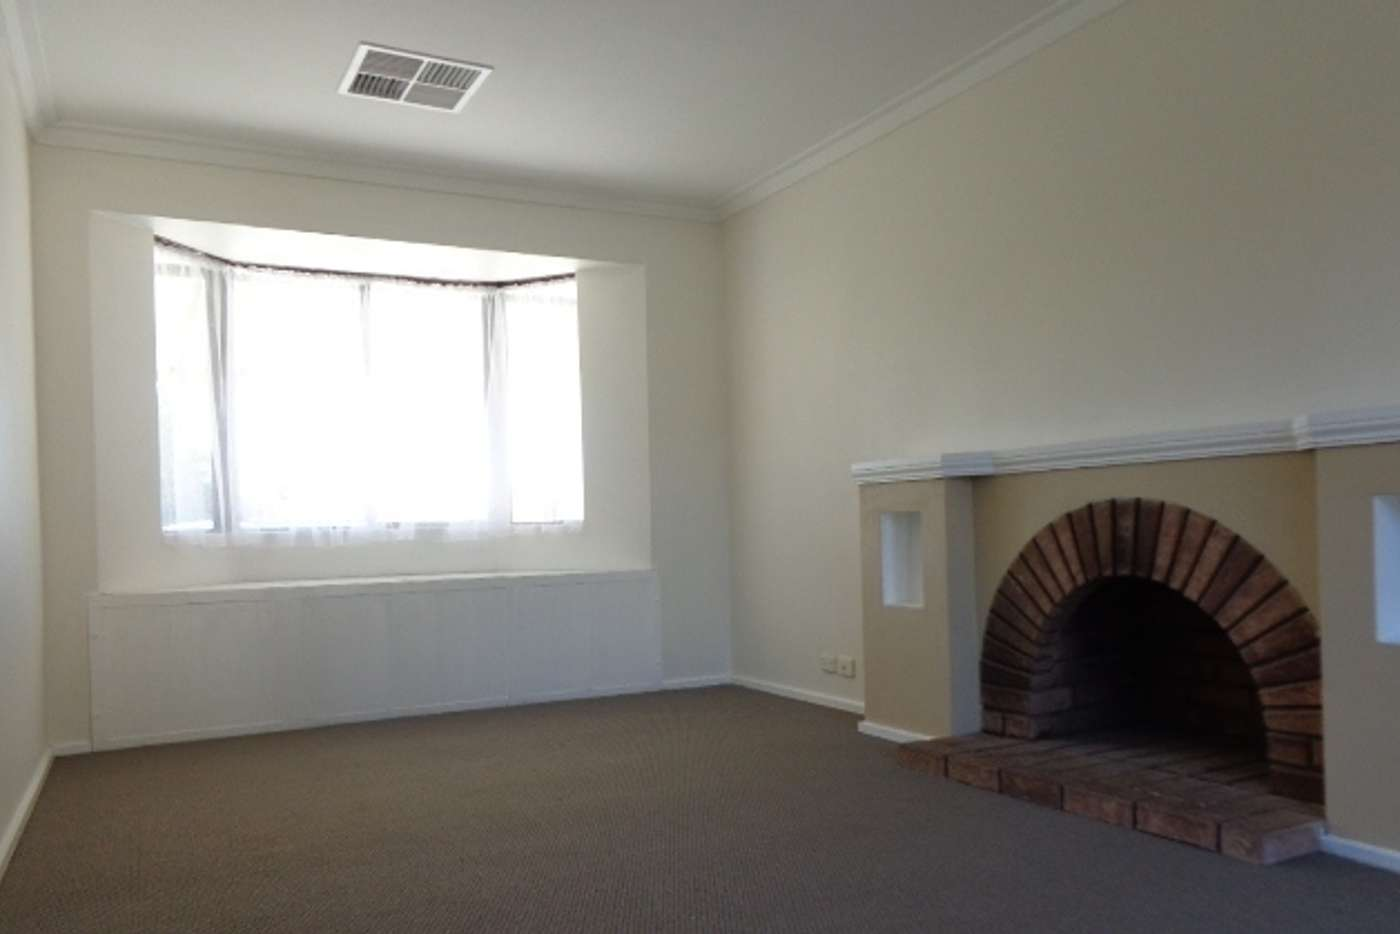 Sixth view of Homely house listing, 127 Corfield Street, Gosnells WA 6110